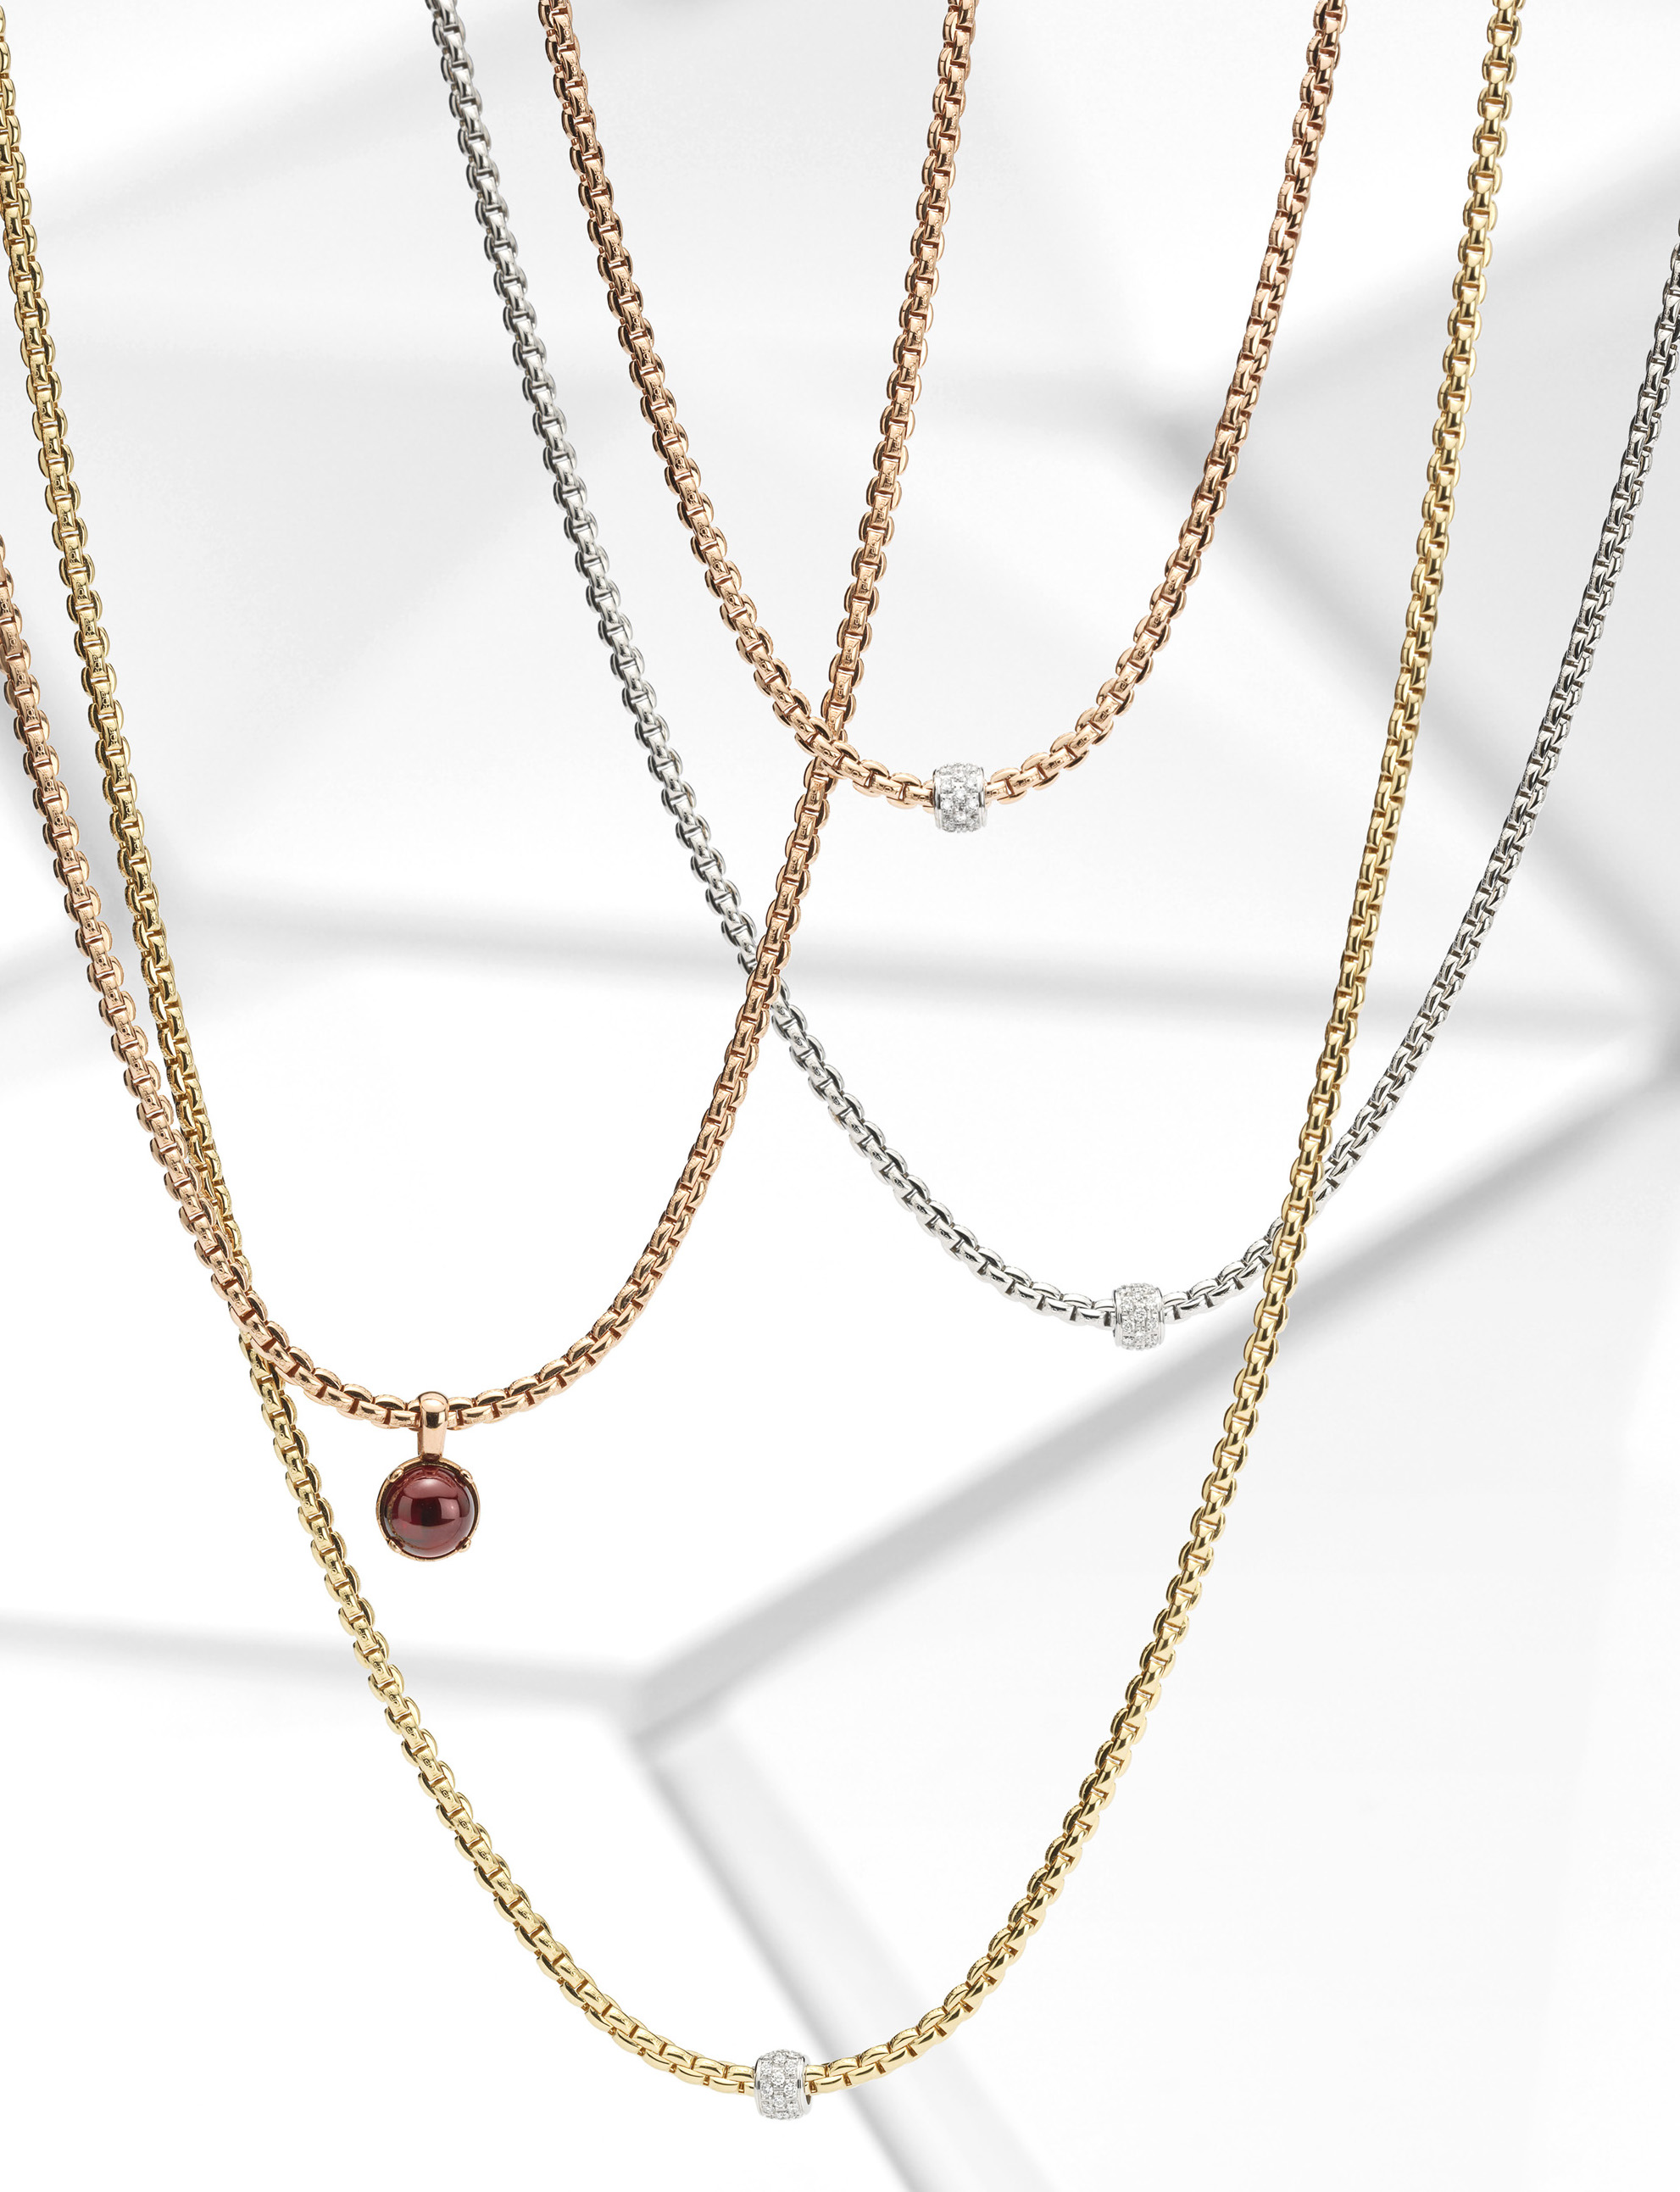 Fope Eka tiny collection necklaces   JCK On Your Market